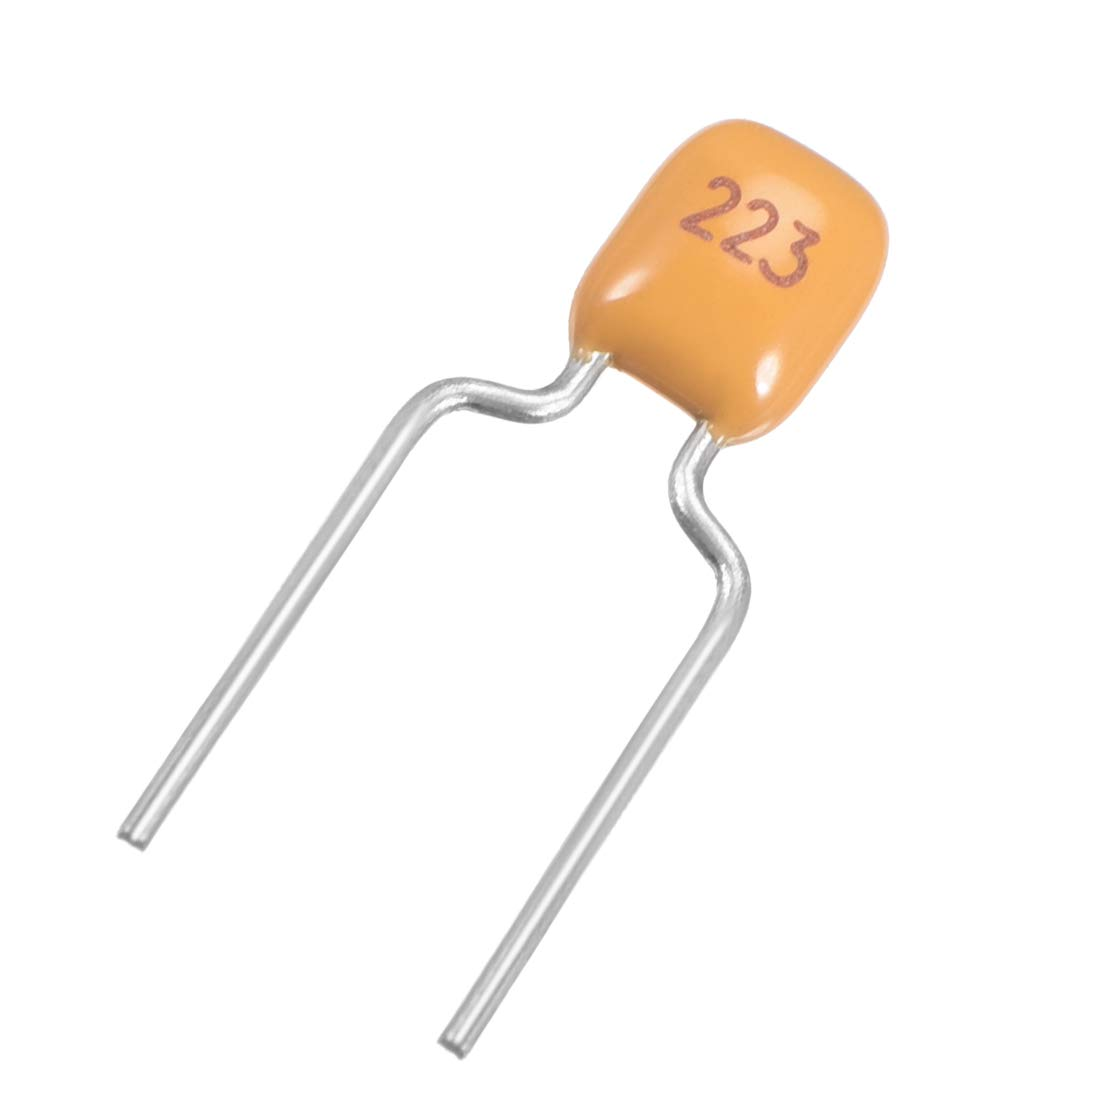 uxcell Monolithic Capacitor 50V 0.22uF Multilayer Ceramic Chip Capacitors for Computers DIY Yellow Pack of 10